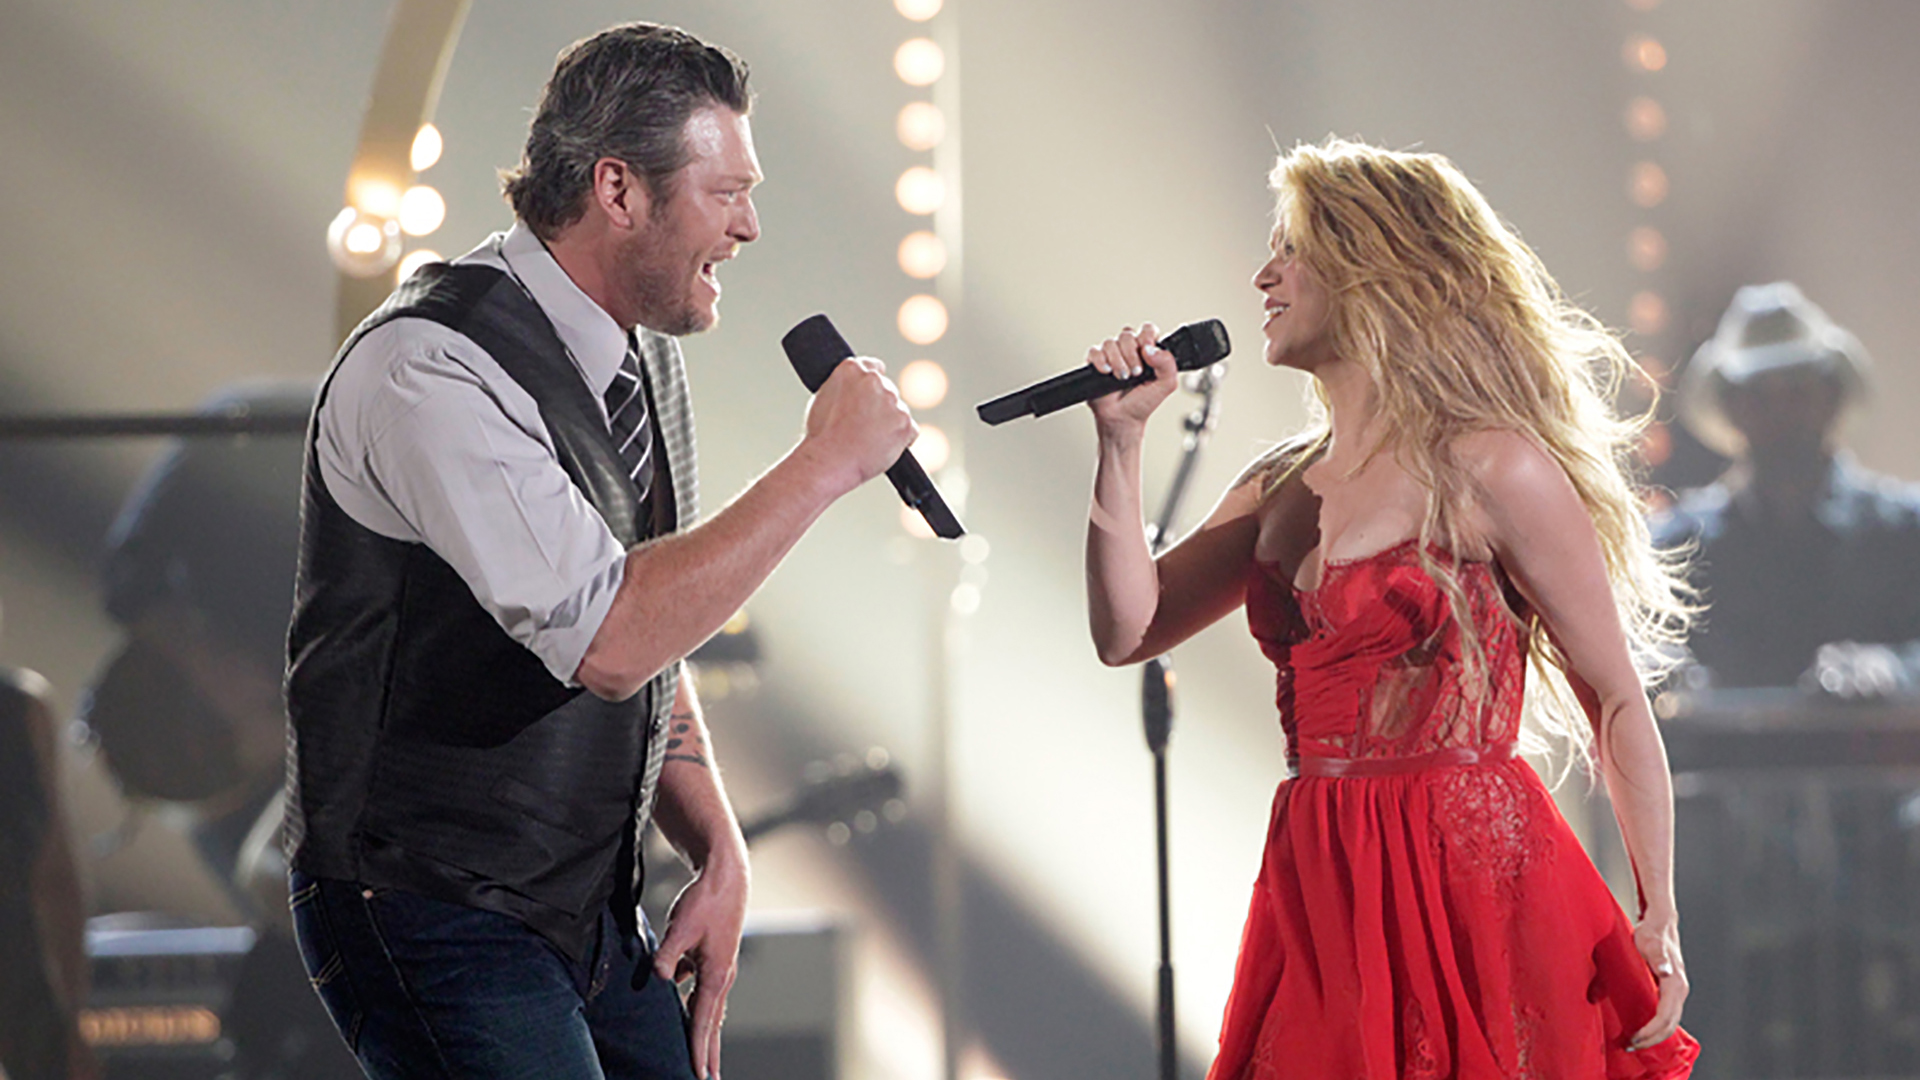 11. Blake Shelton and Shakira perform